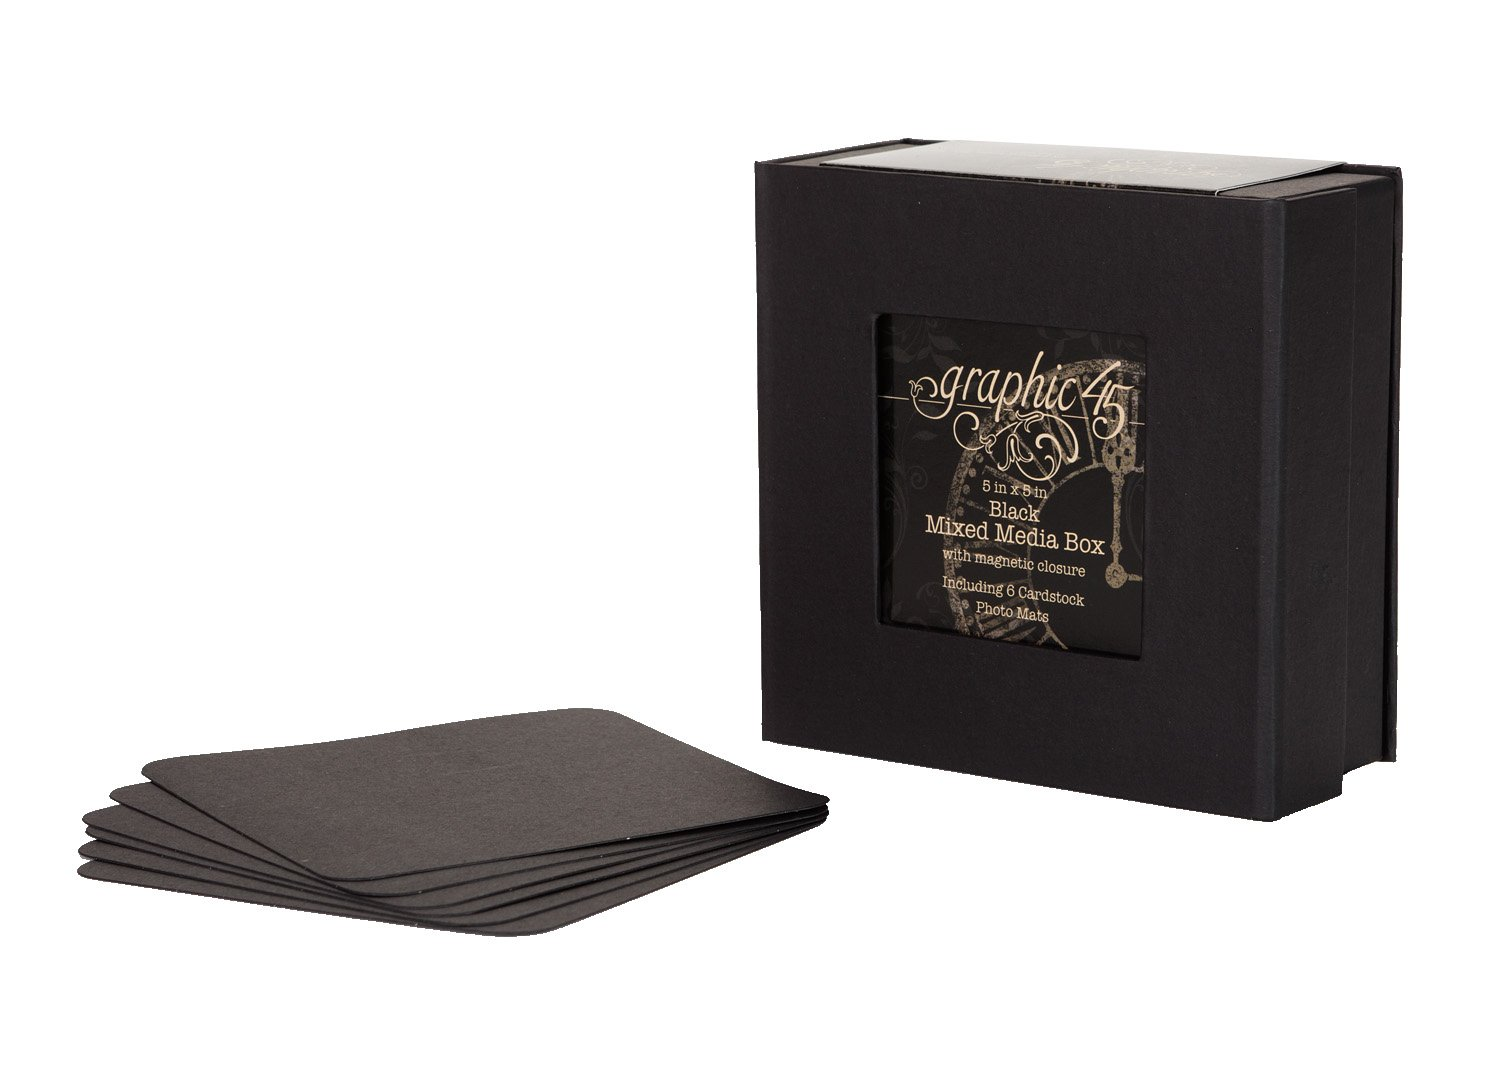 Graphic 45 Mixed Media Box, 5 by 5-Inch, Black 4500983